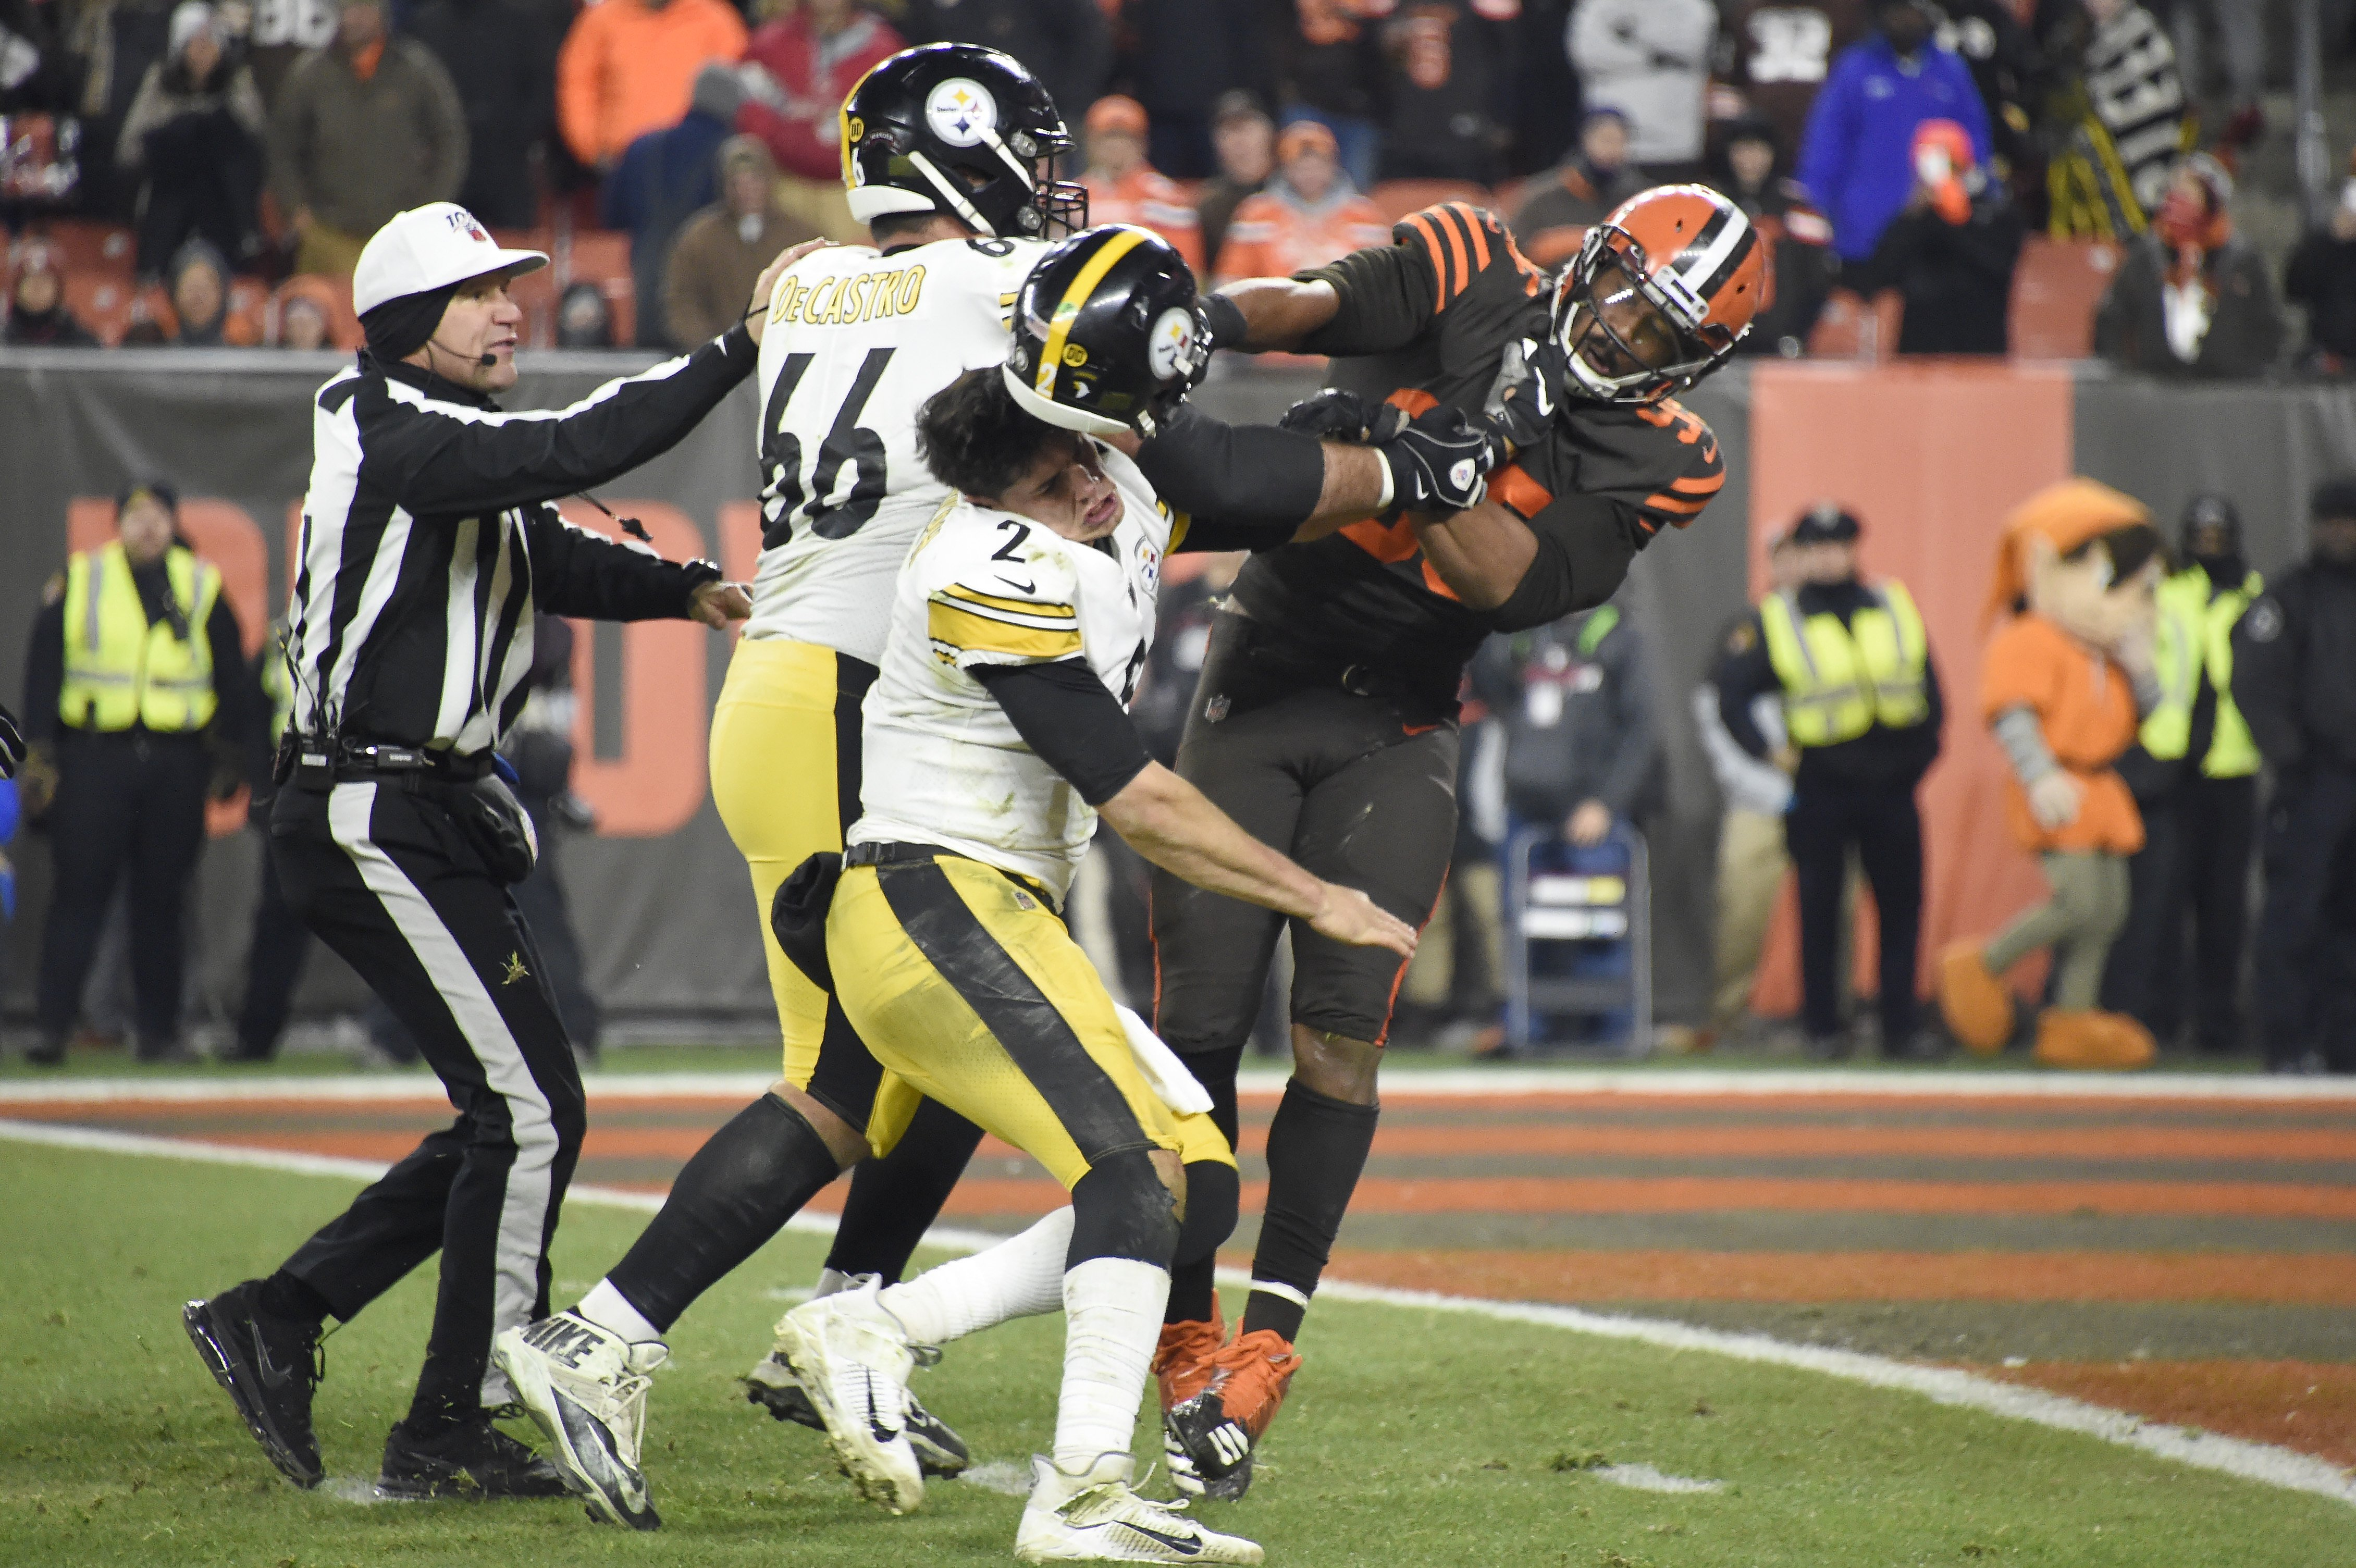 Steelers quarterback Mason Rudolph apologizes for his role in helmet-swinging brawl